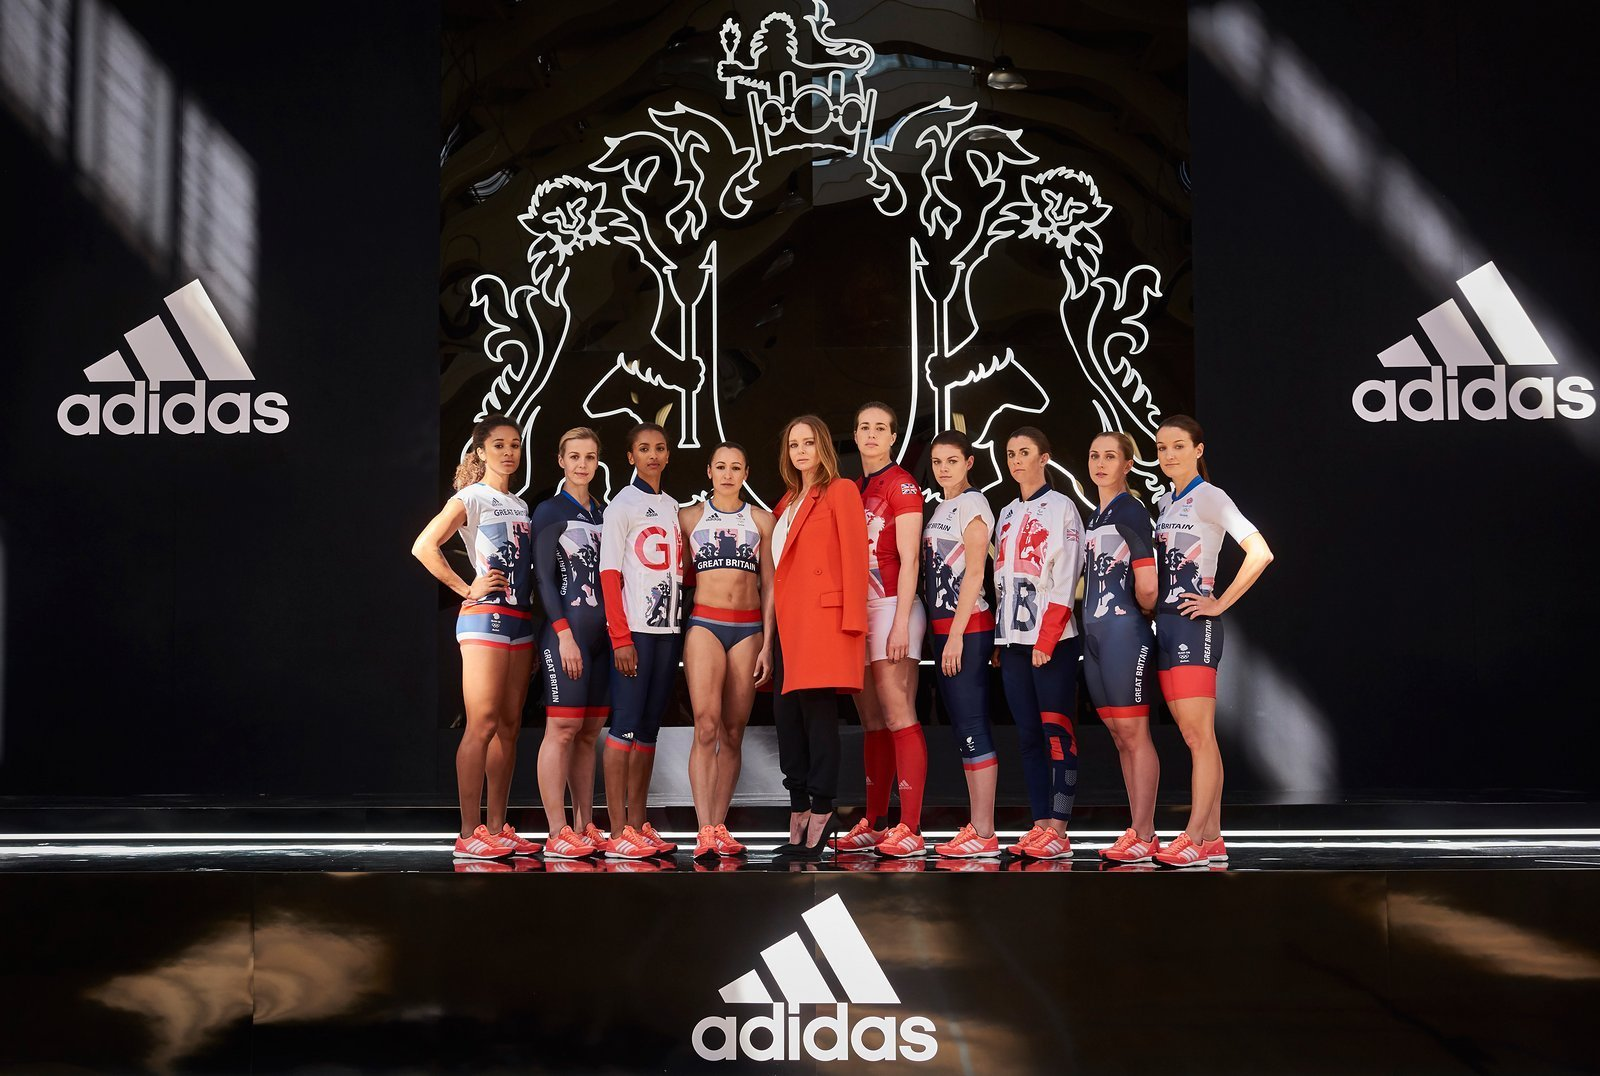 Stella McCartney and Adidas unveil bold and brave Olympics 2016 kit for Team GB - Luxurylaunches